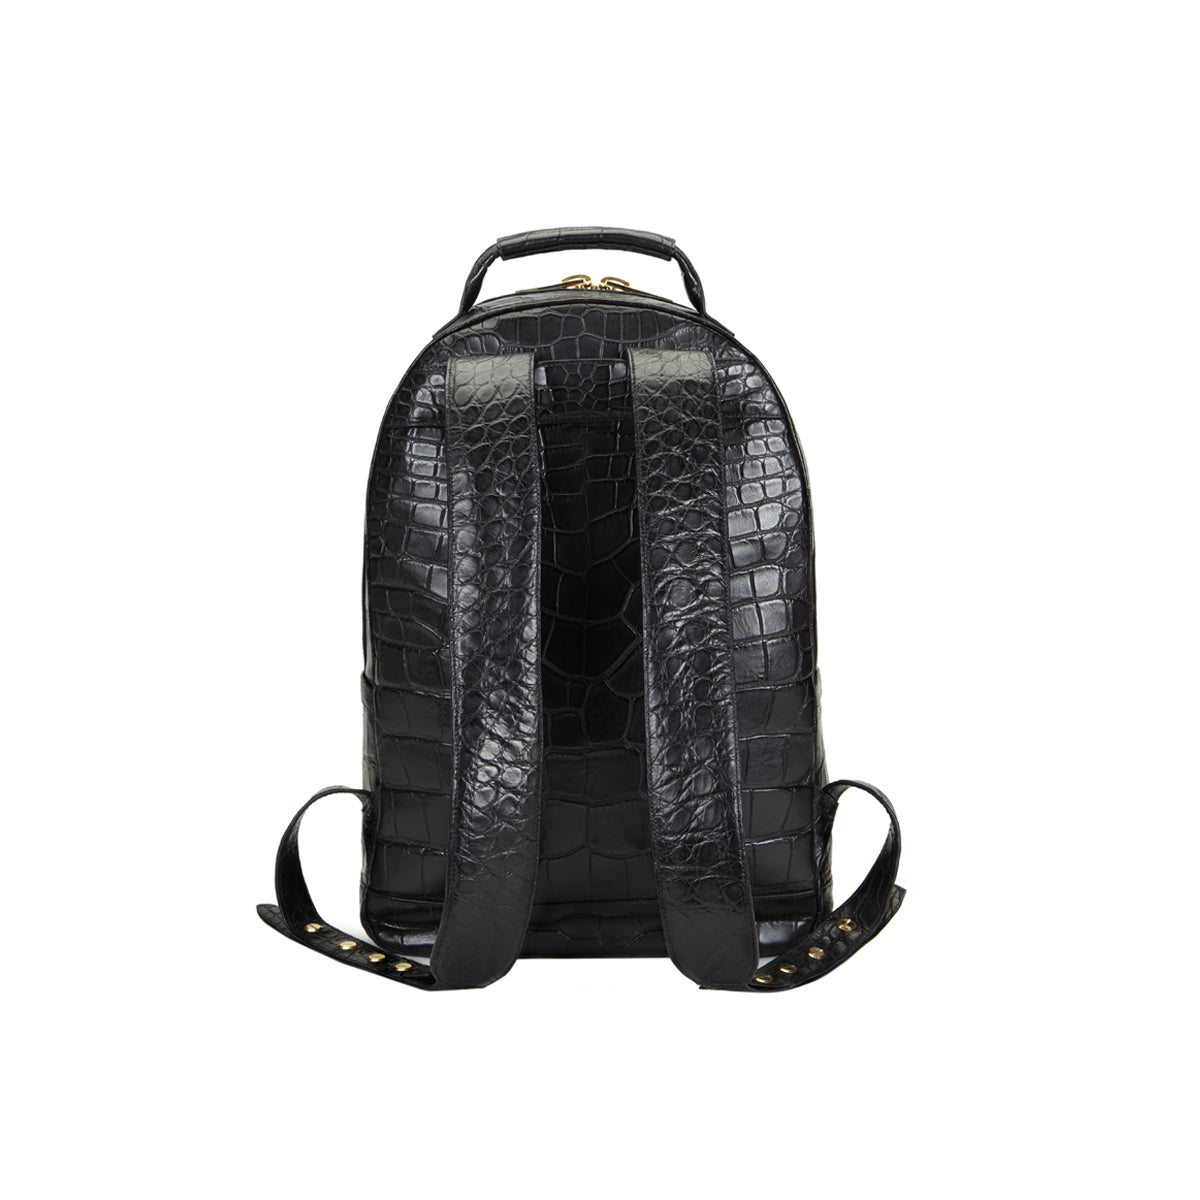 Brighton Flat Front Backpack Large - Black Alligator